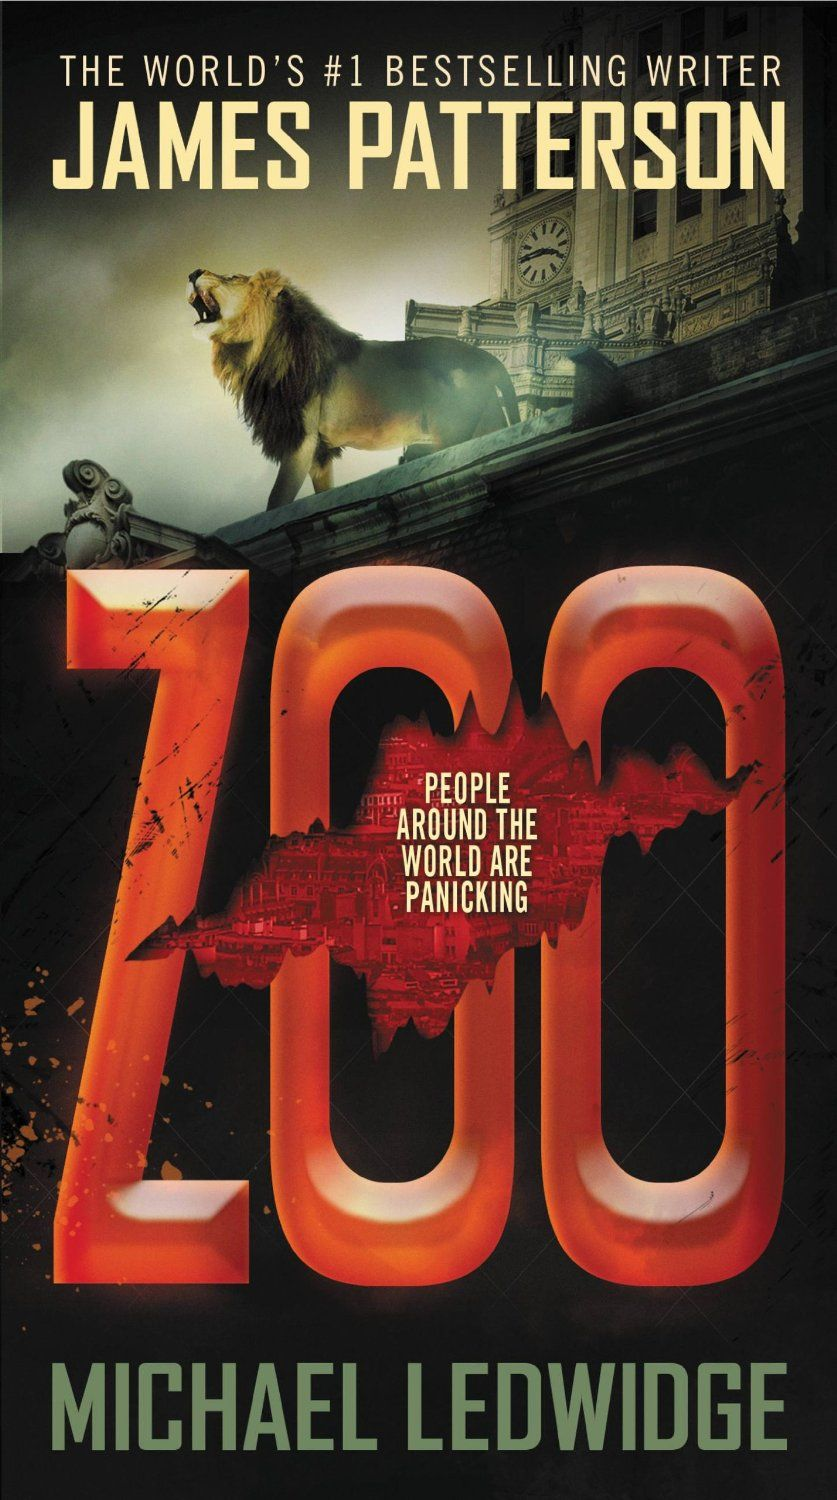 Image result for zoo james patterson book cover